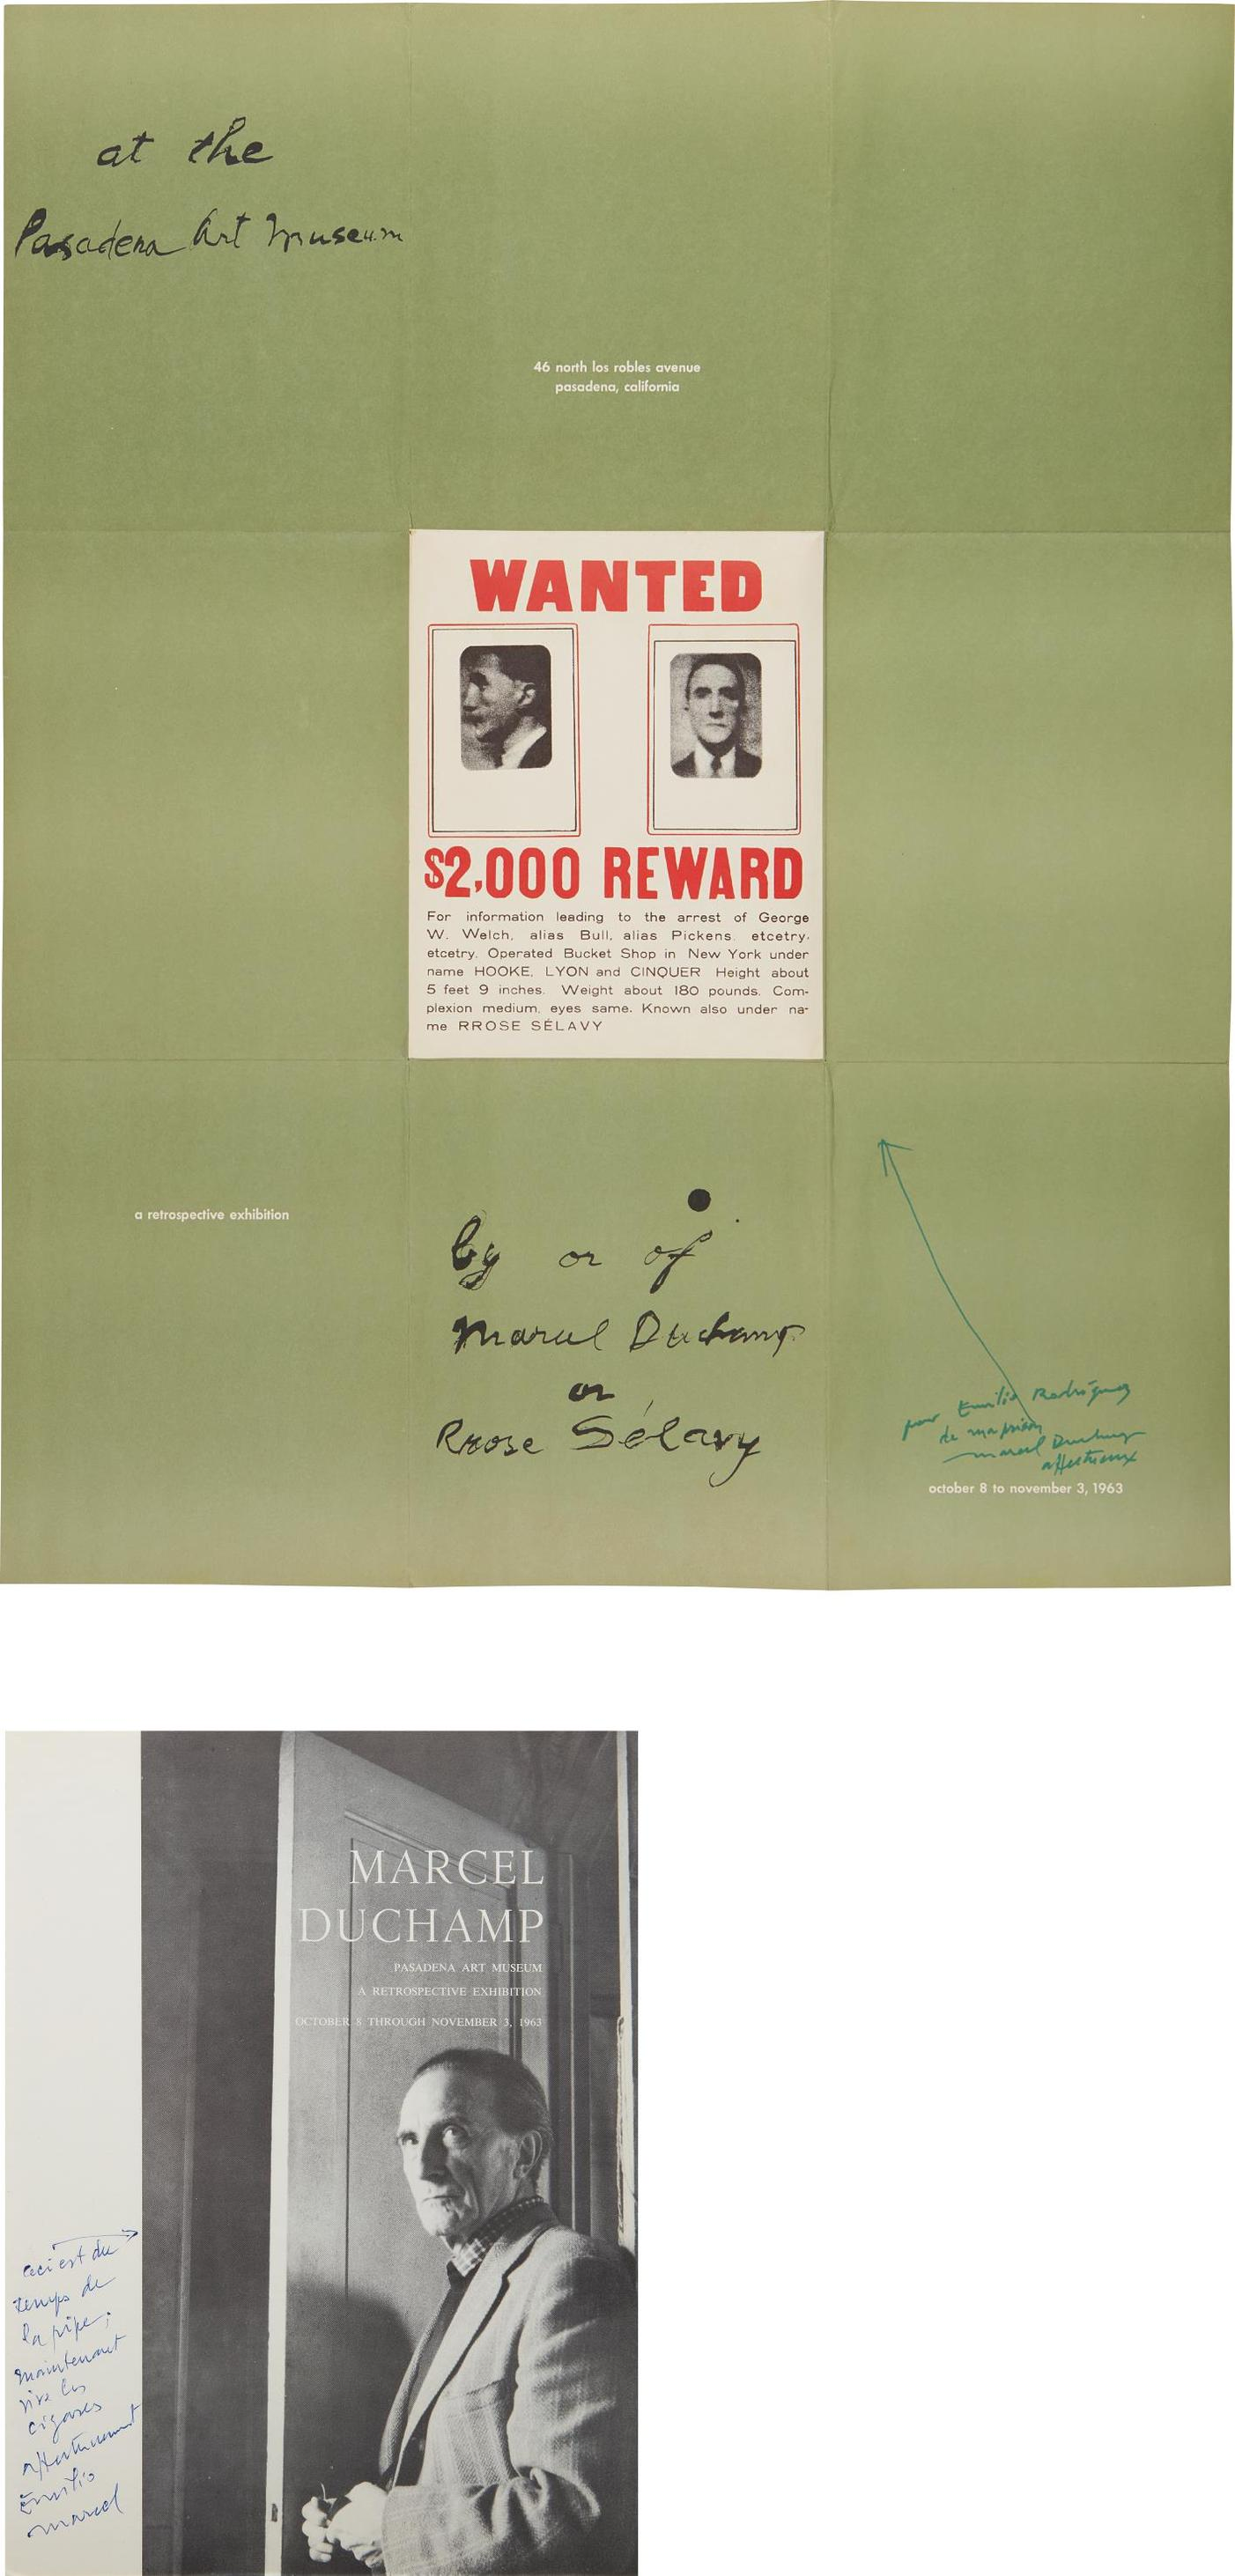 Marcel Duchamp-A Poster Within A Poster; And Cover For 'Marcel Duchamp: A Retrospective Exhibition'-1963